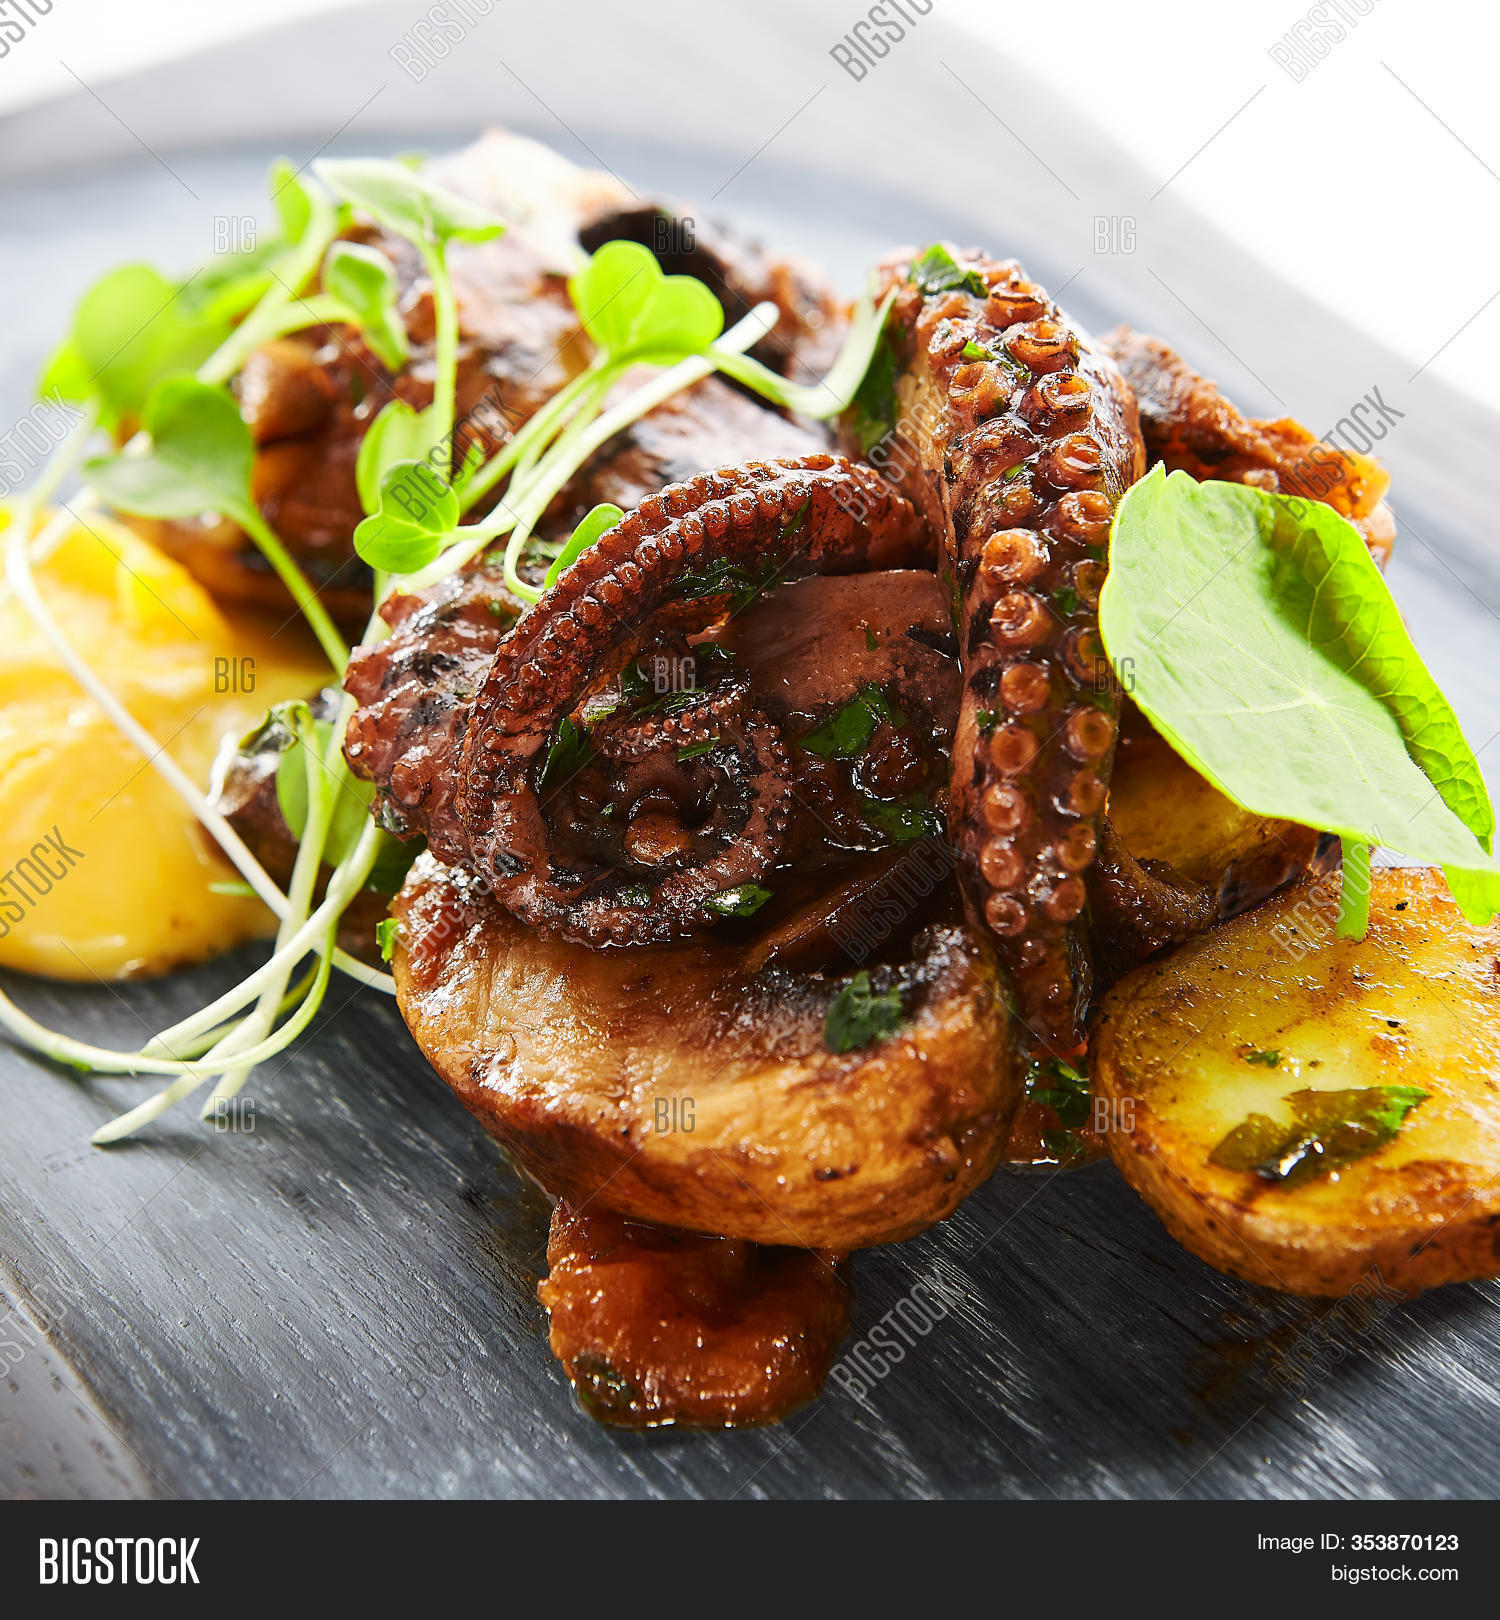 Grilled Octopus Baked Image Photo Free Trial Bigstock